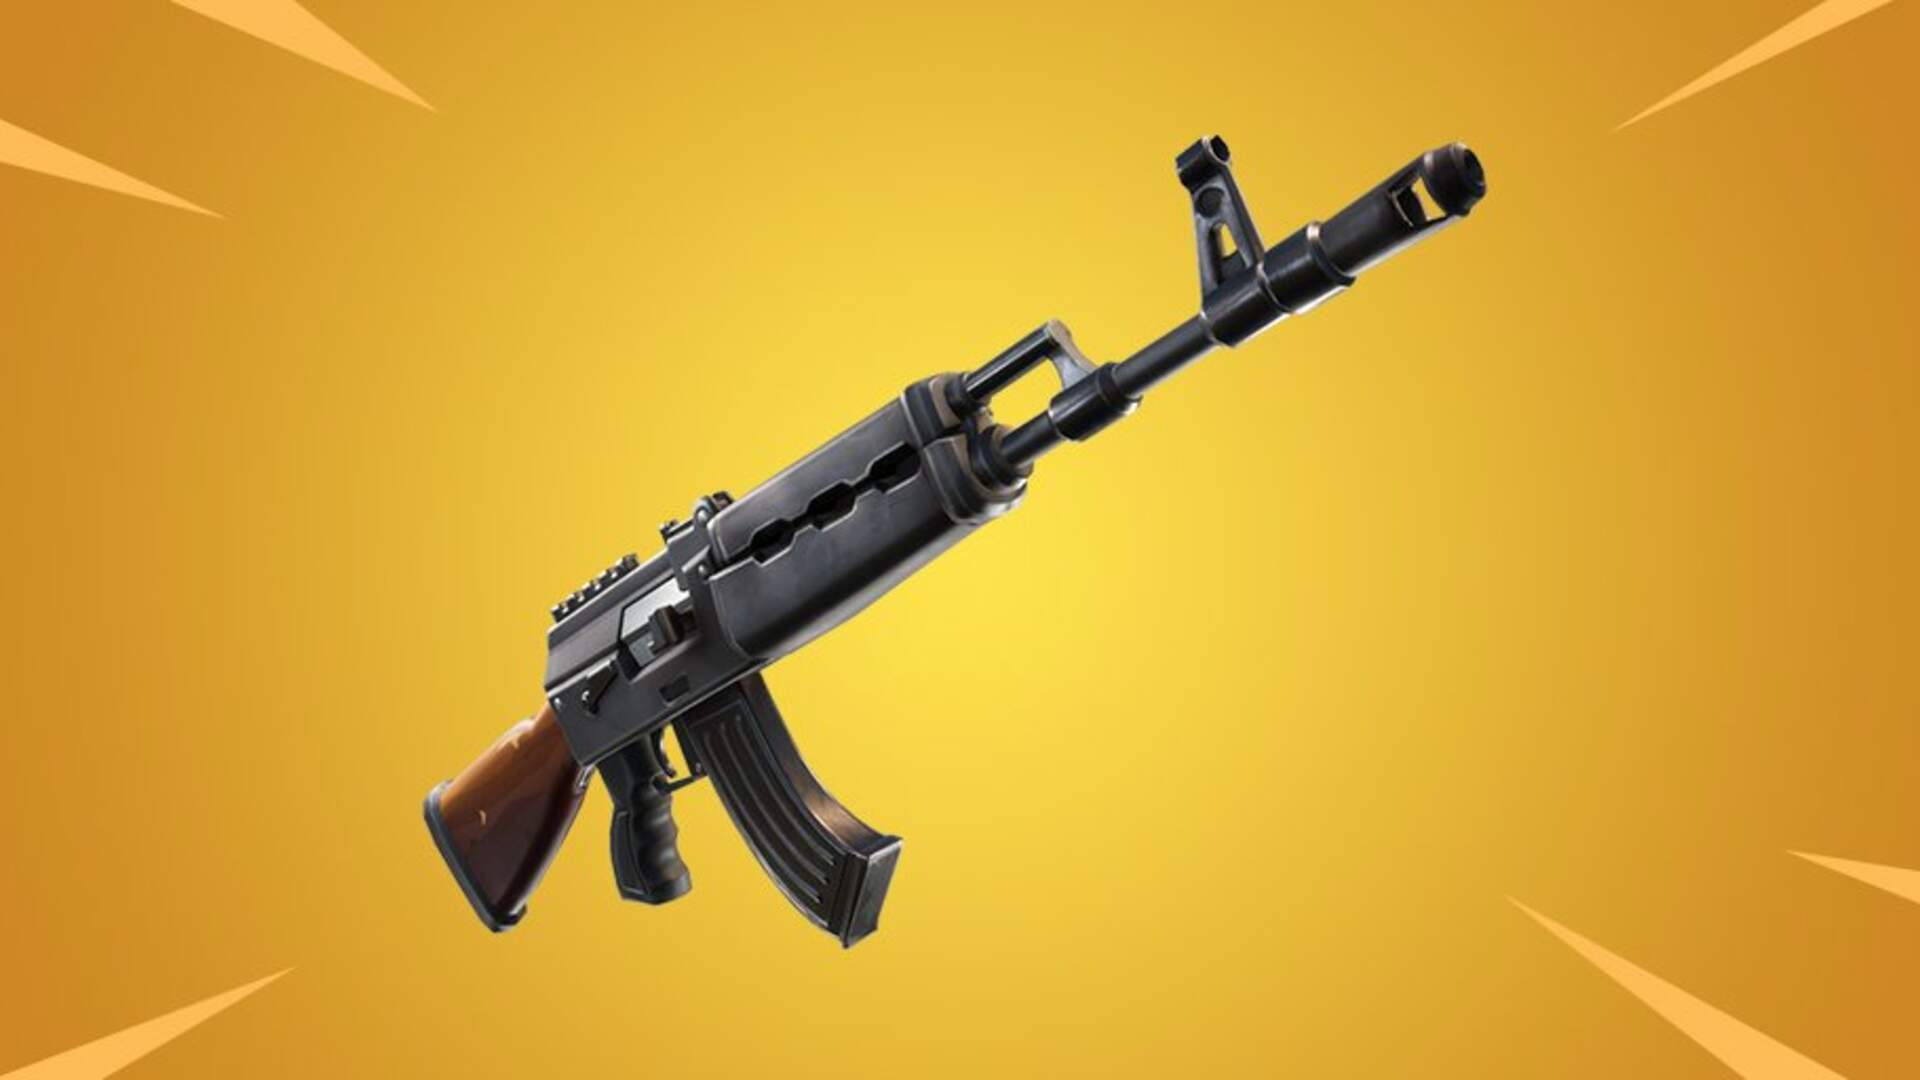 Fortnite is Getting a Heavy Assault Rifle: Here's What to Expect